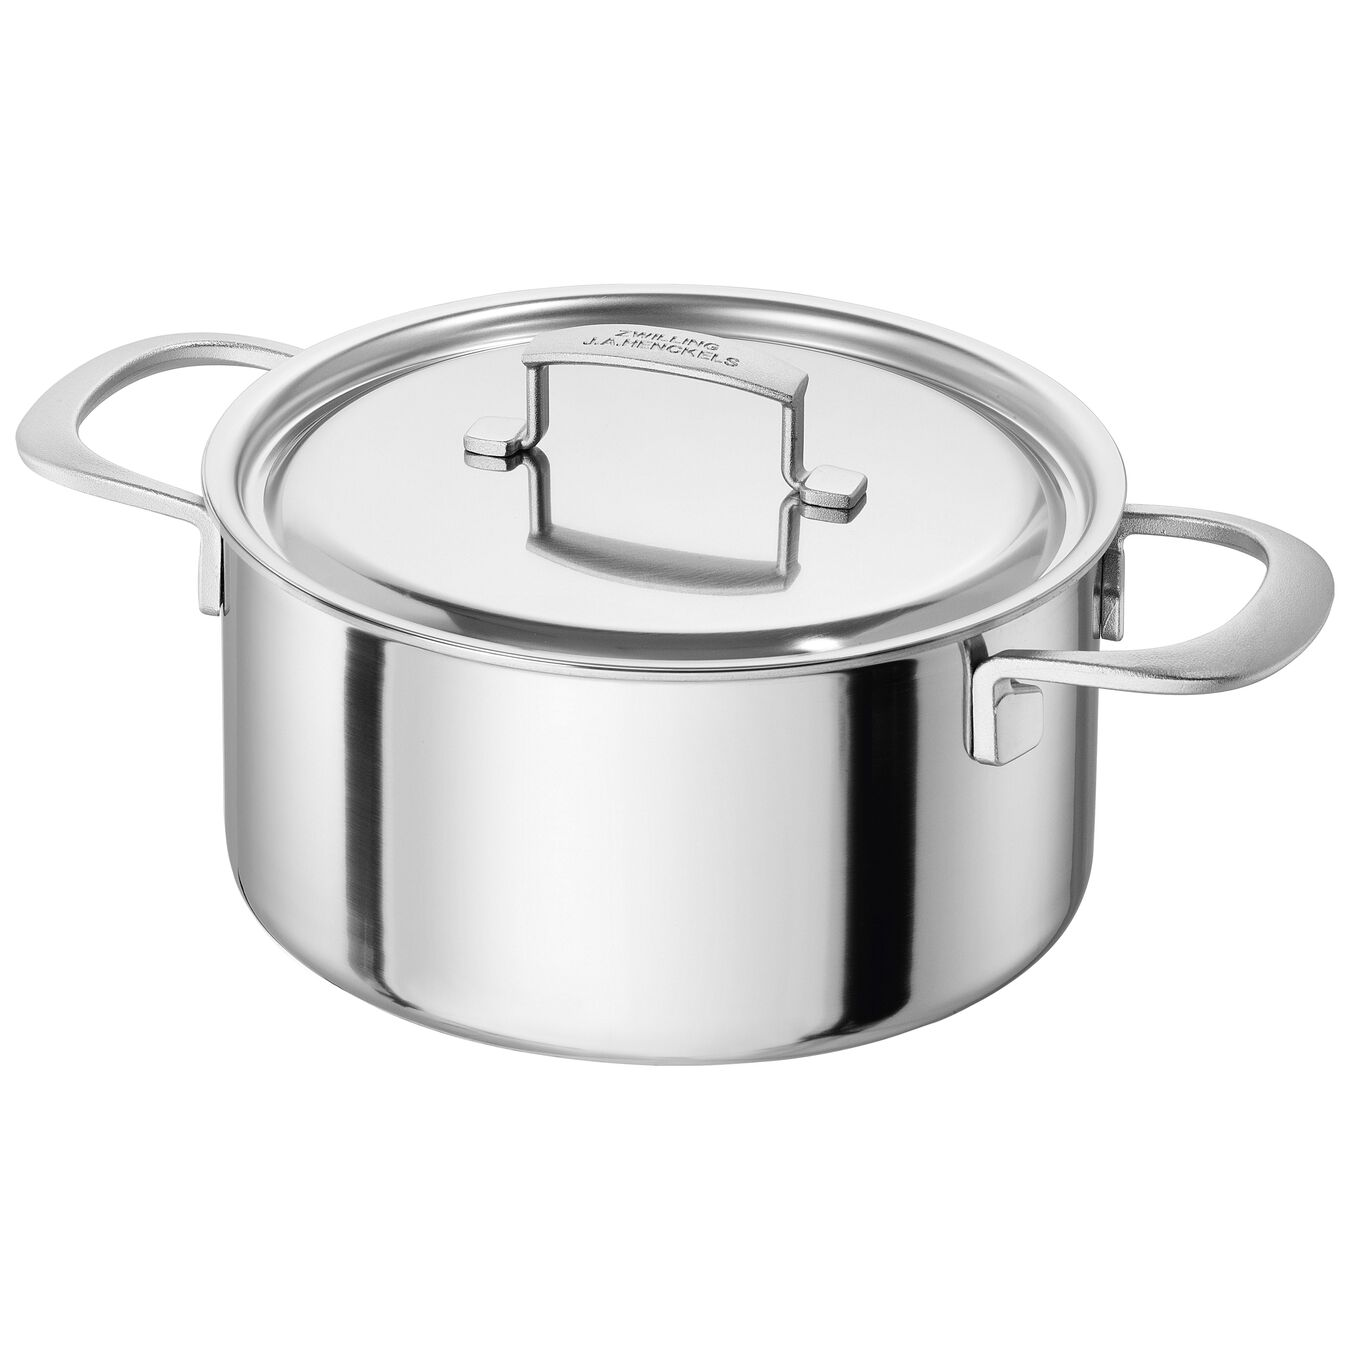 5.25 l 18/10 Stainless Steel Stew pot,,large 1